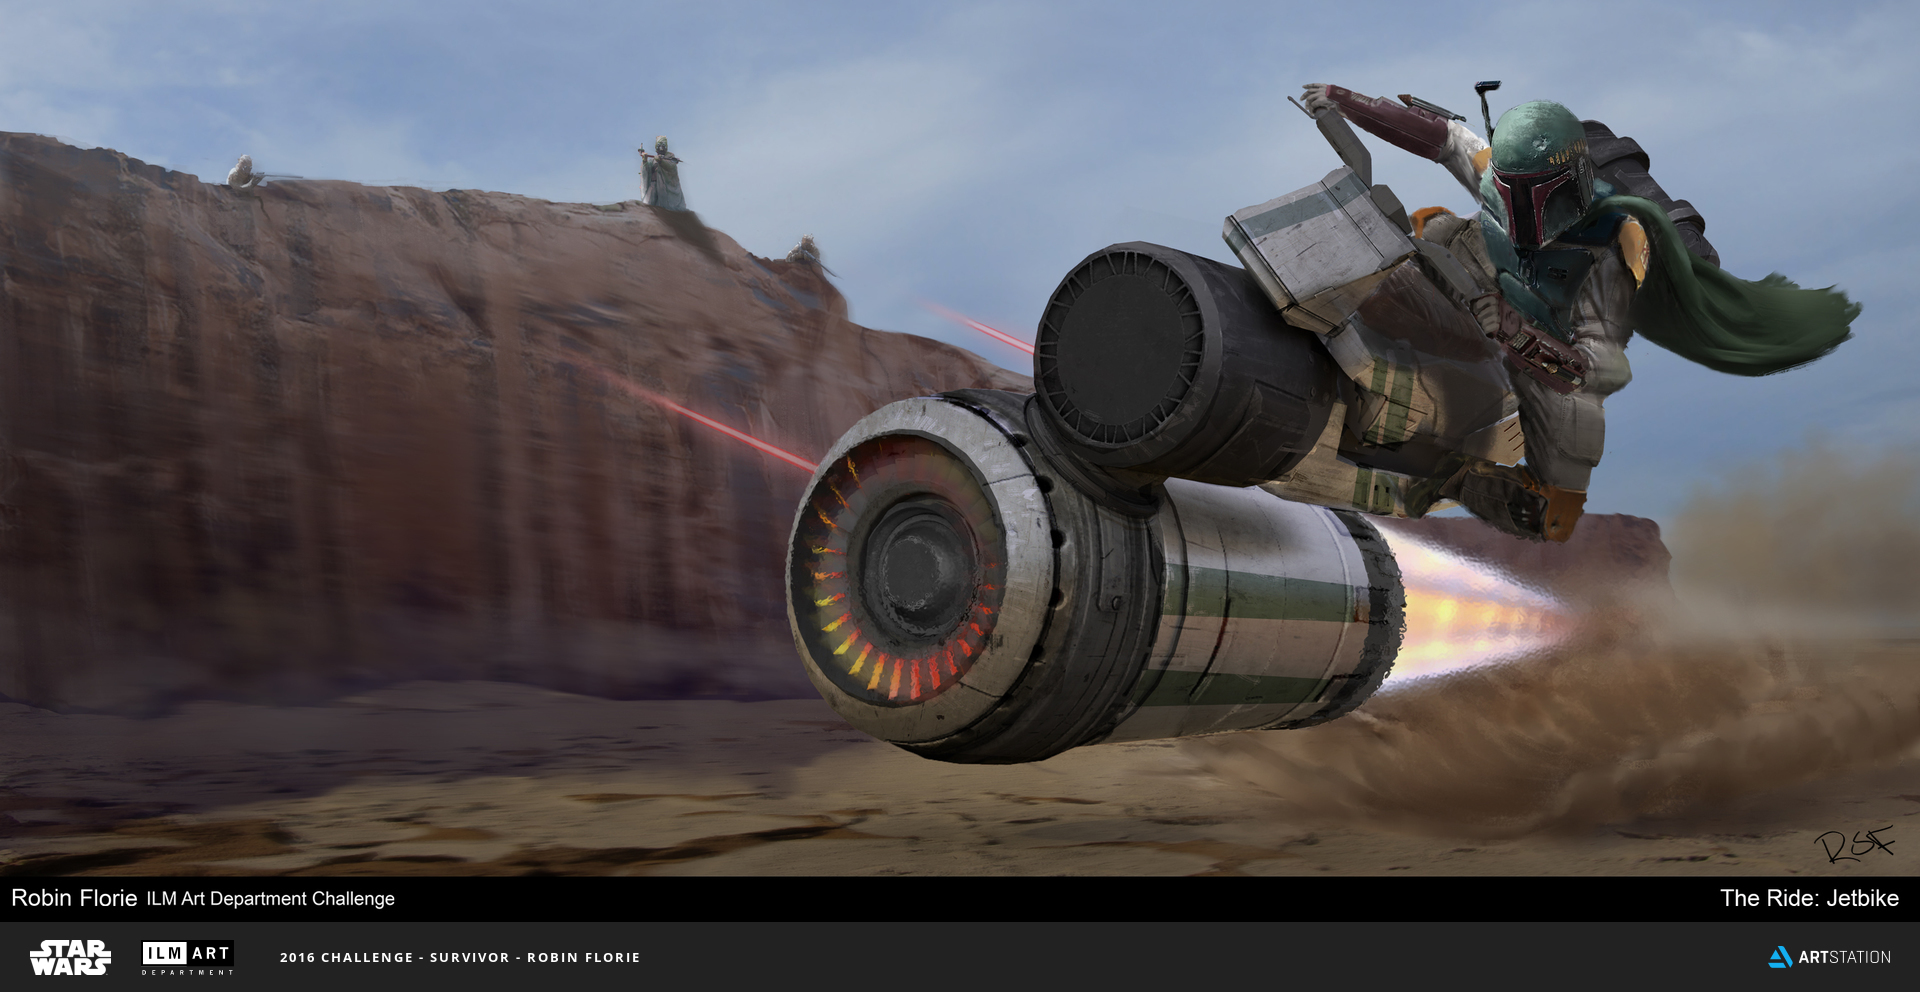 2016 ILM Art Department Challenge Entry by Robin Florie